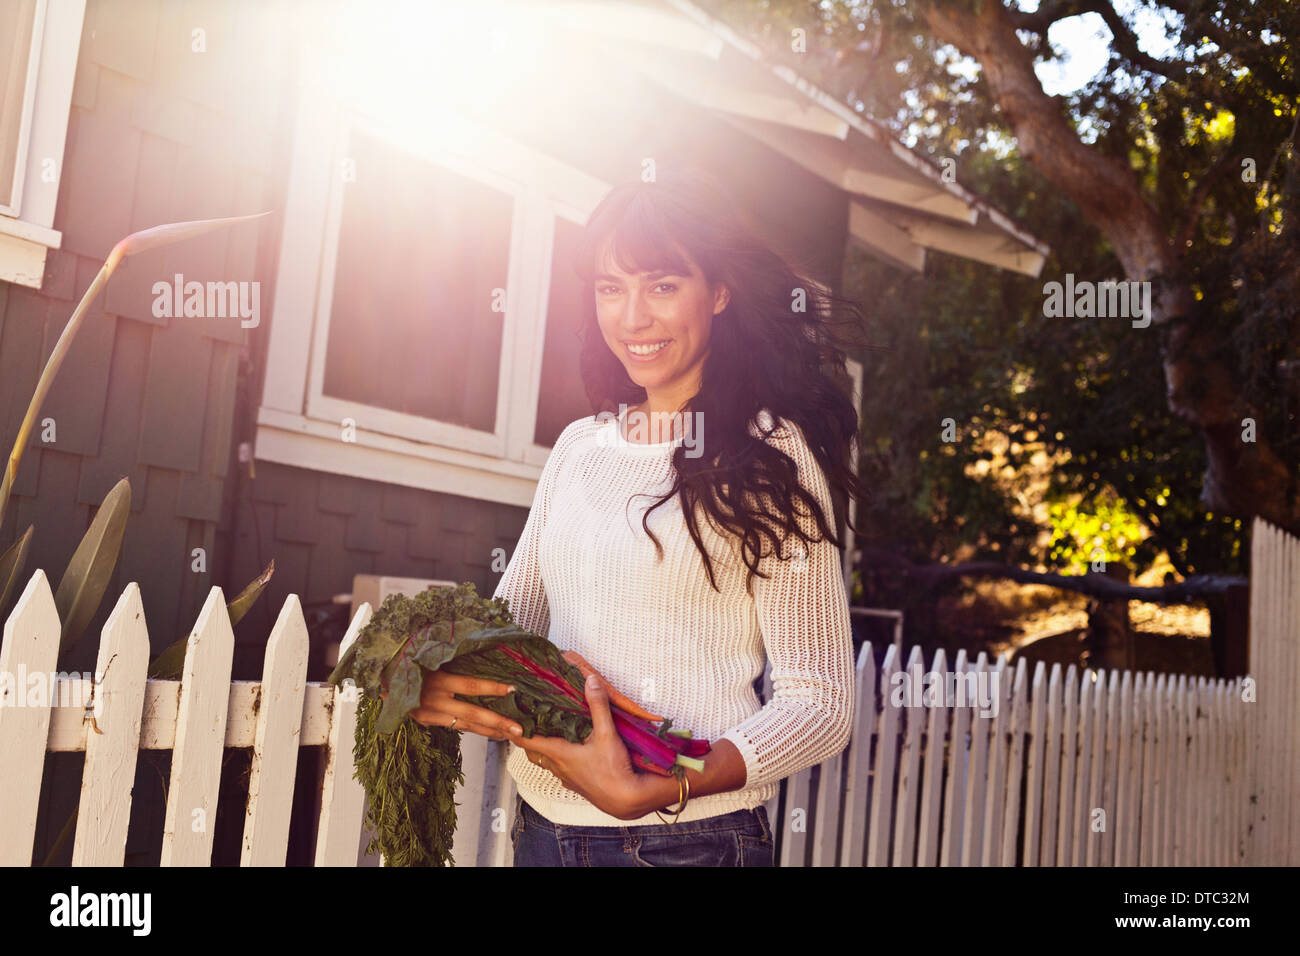 Portrait of young woman holding homegrown vegetables - Stock Image